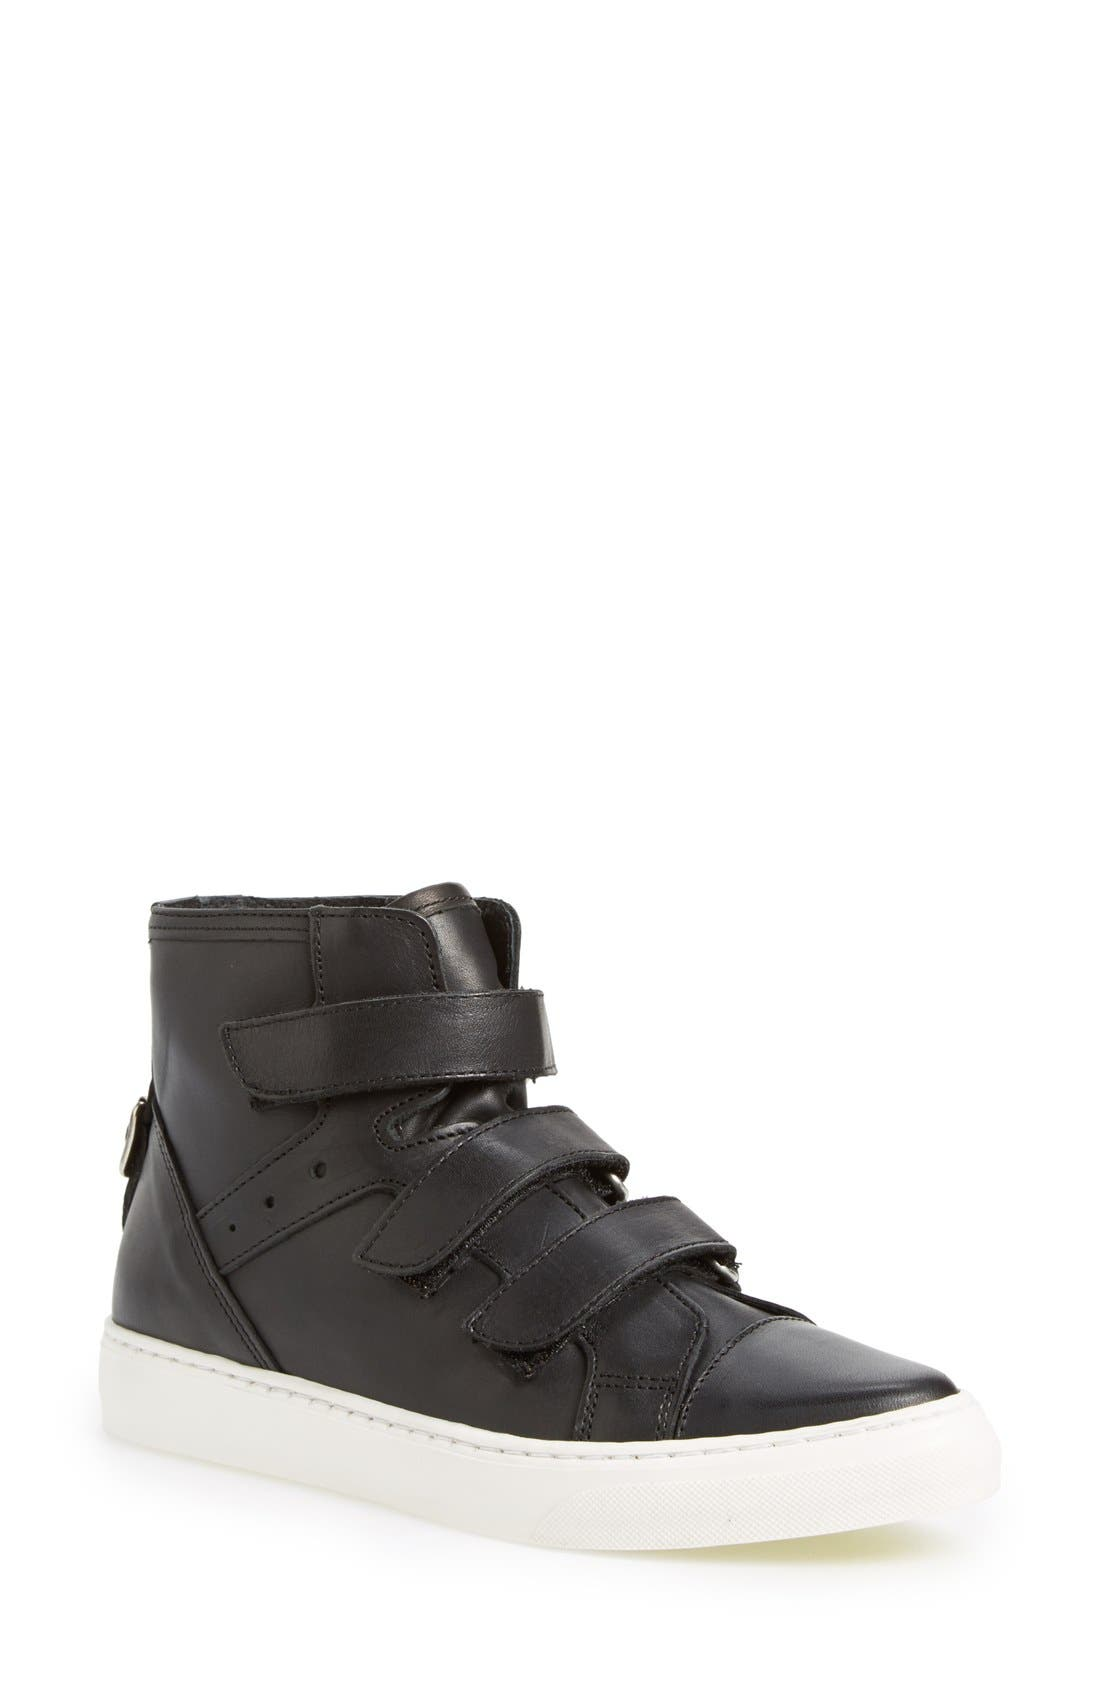 JSLIDES Prima' High Top Sneaker (Women)